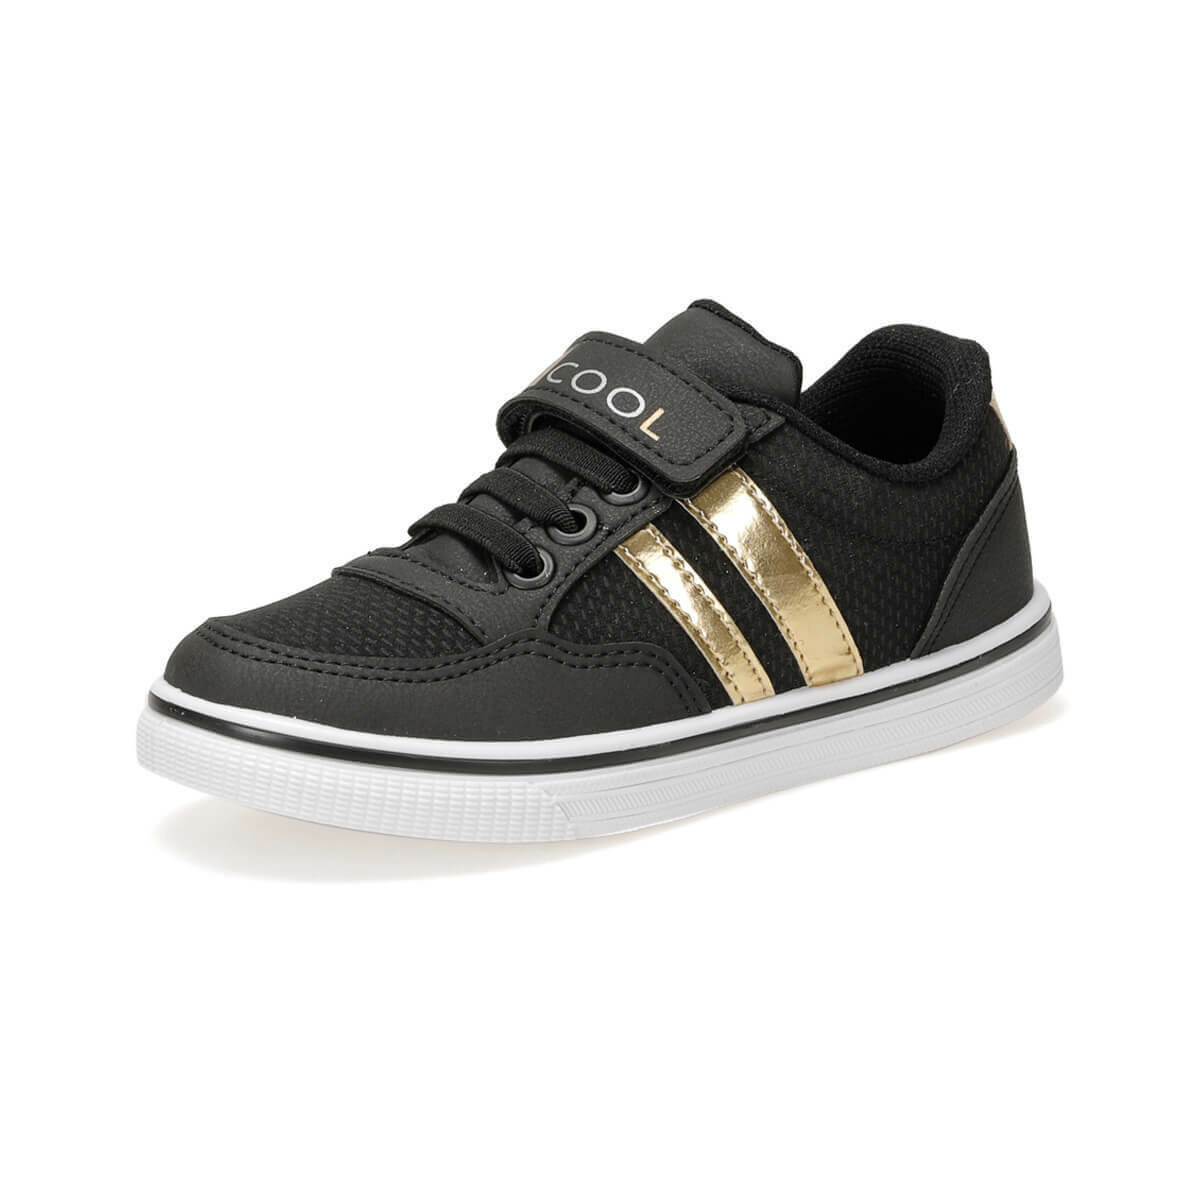 FLO TALU P Black Female Child Shoes I-Cool